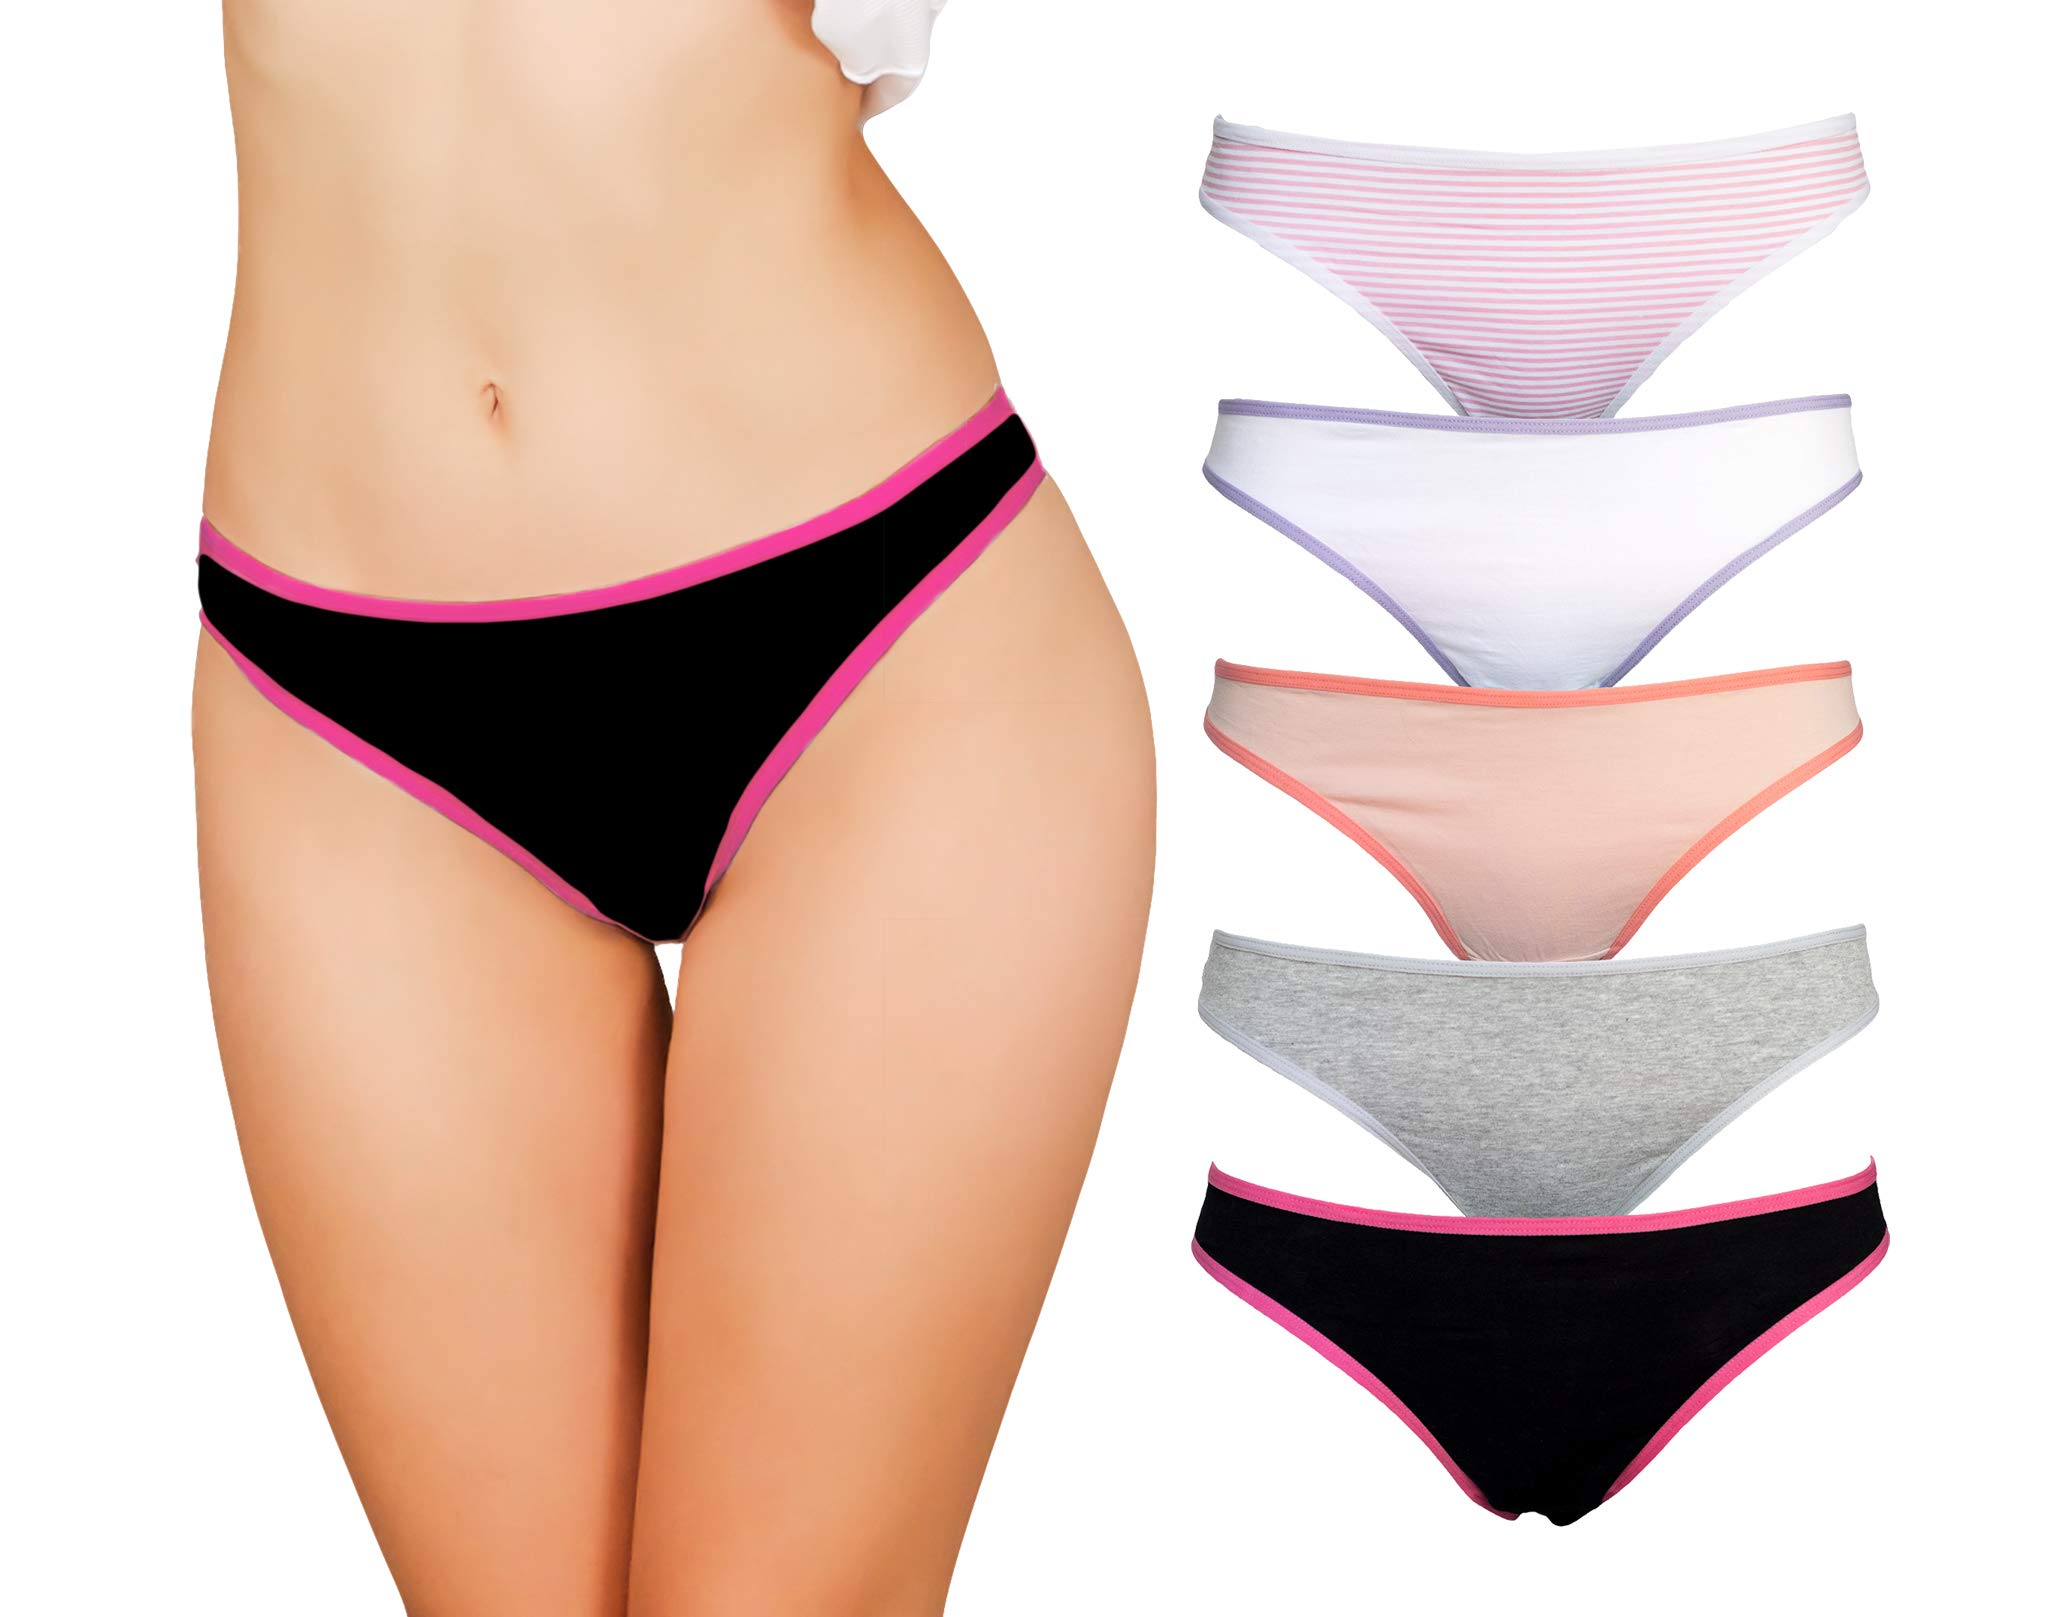 4ef77b0ed0ba Emprella Cotton Thongs for Women, 5 Value Pack of Seamless Underwear,  Breathable and Low